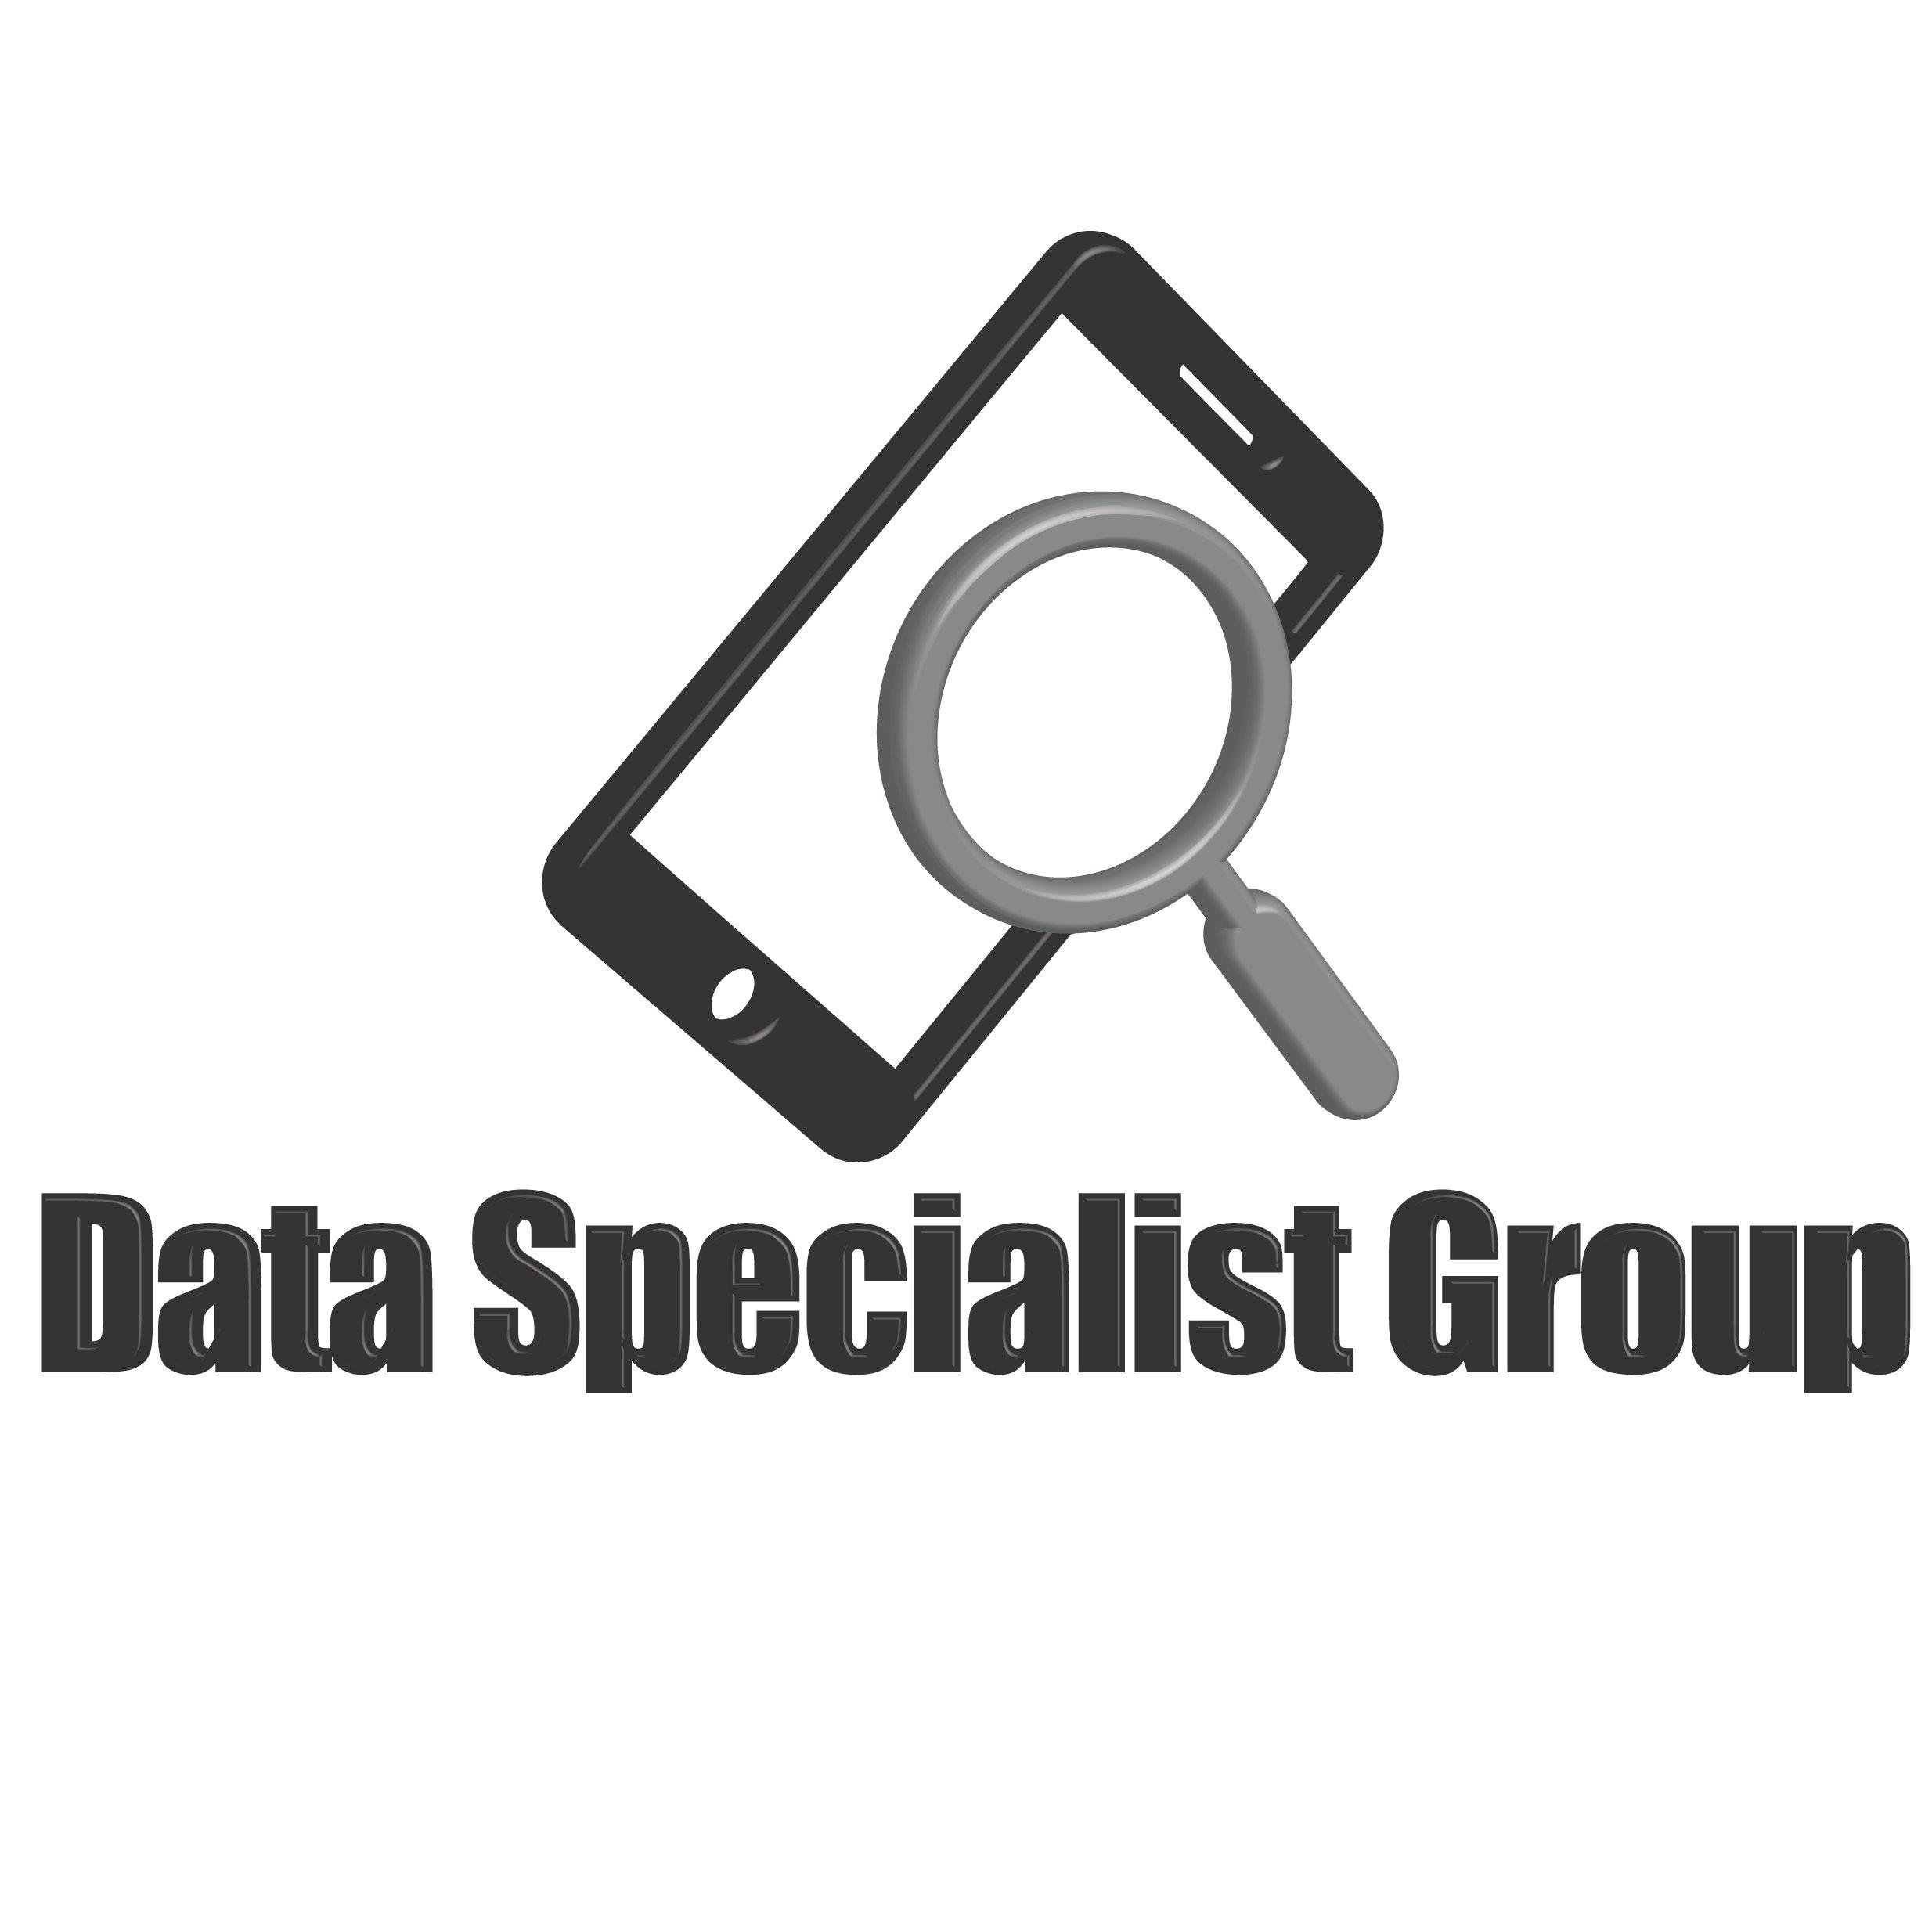 Data Specialist Group image 4